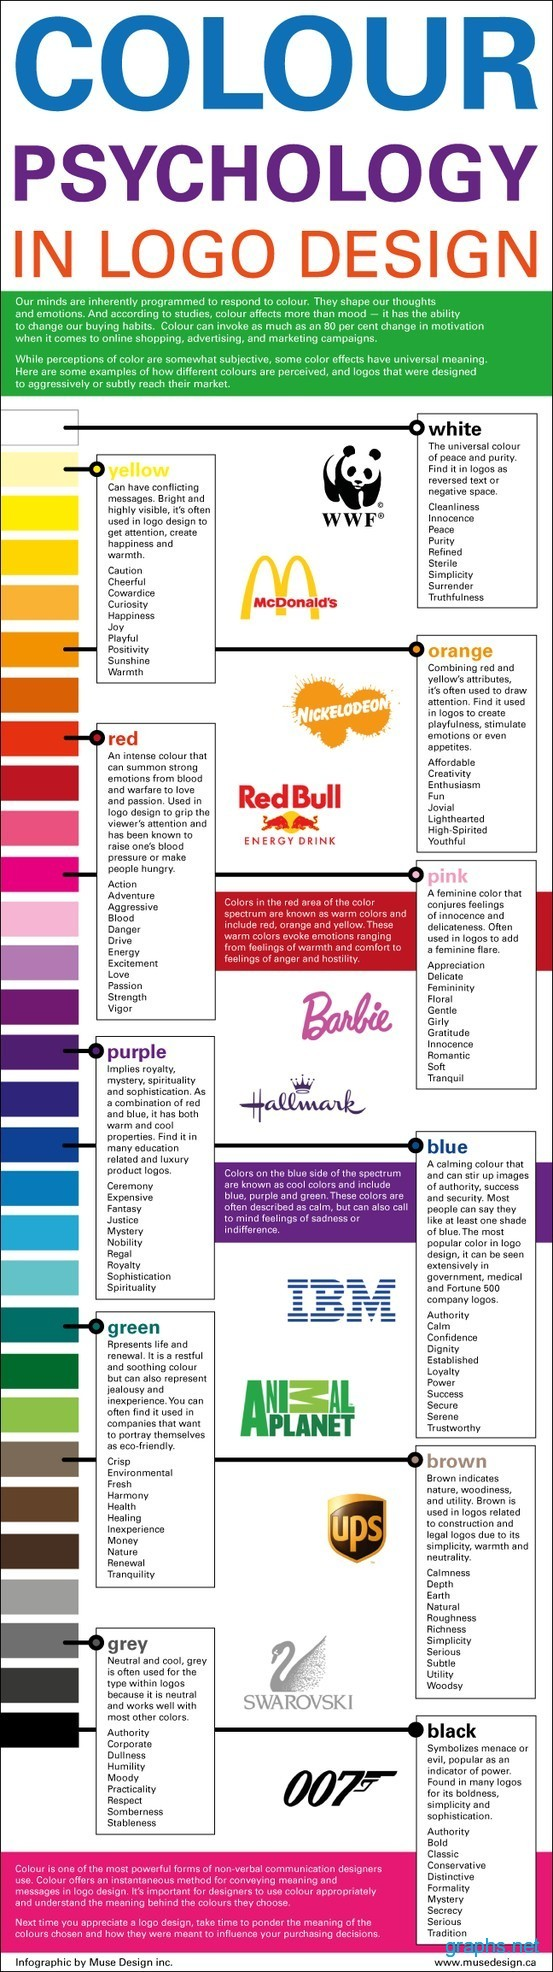 Meaning of Colours in Logo Design